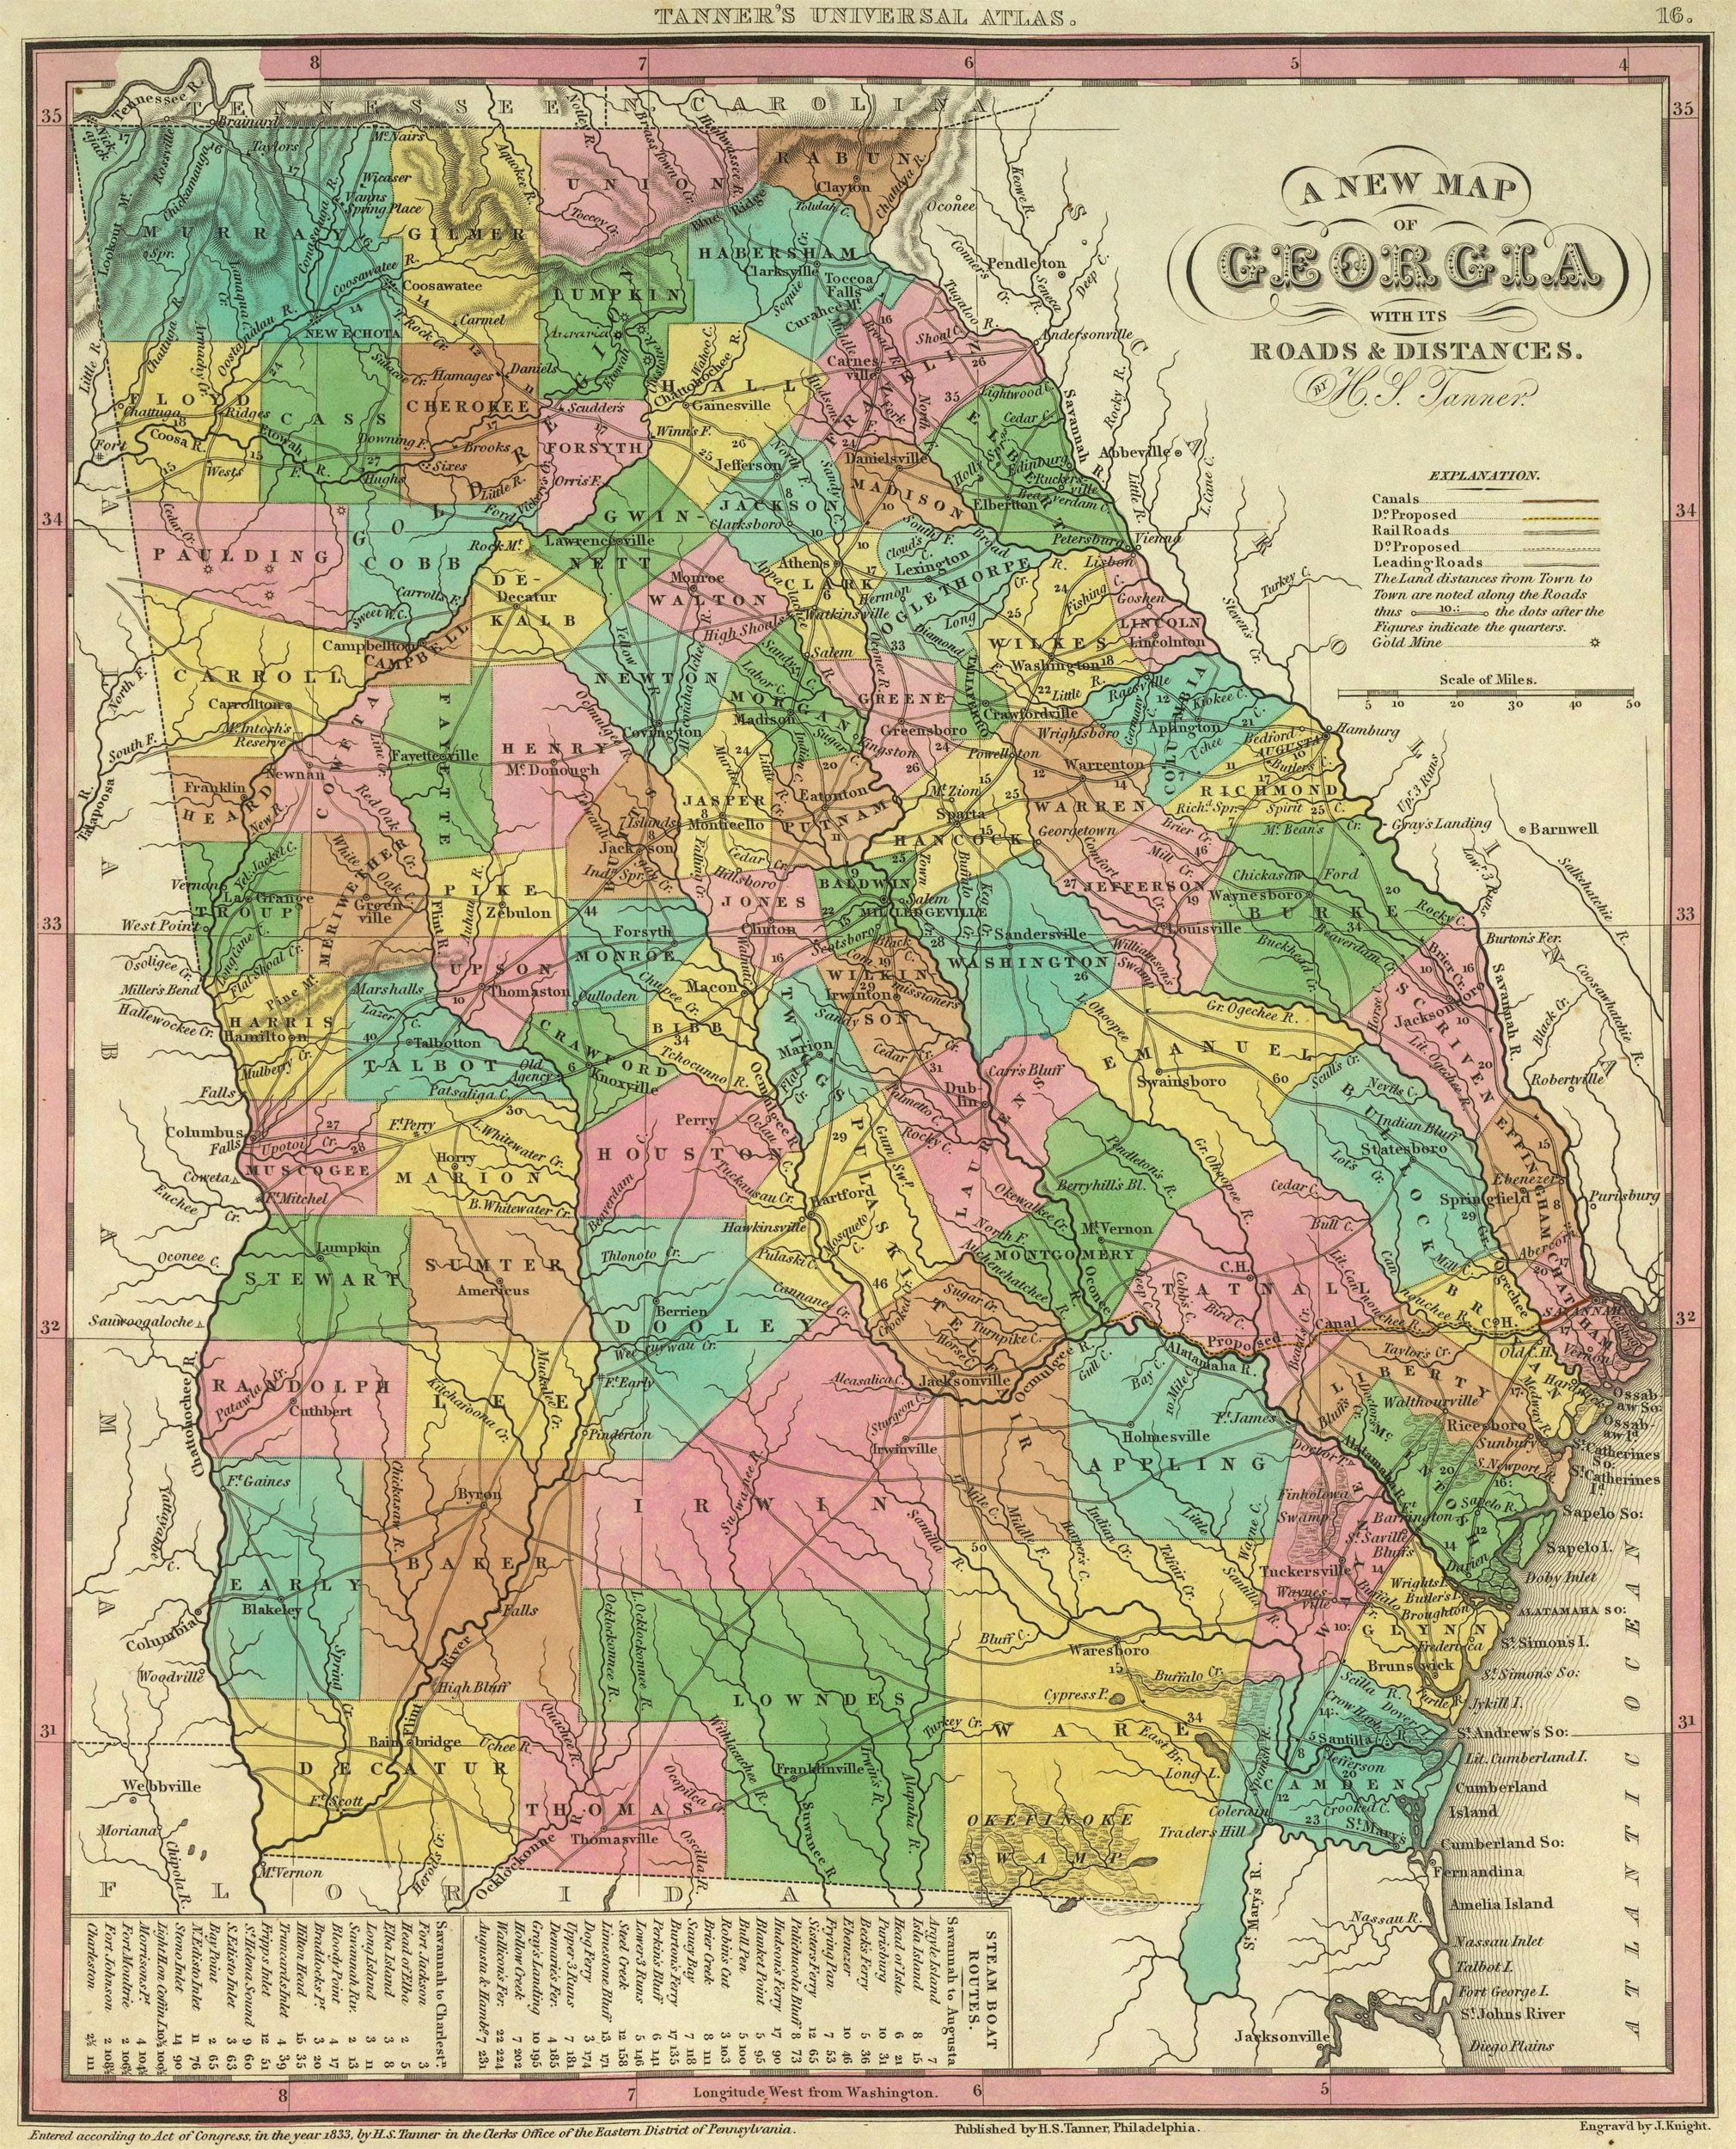 Map Of Georgia Roads.1836 Map Of Georgia With Its Roads And Distances Heritage County